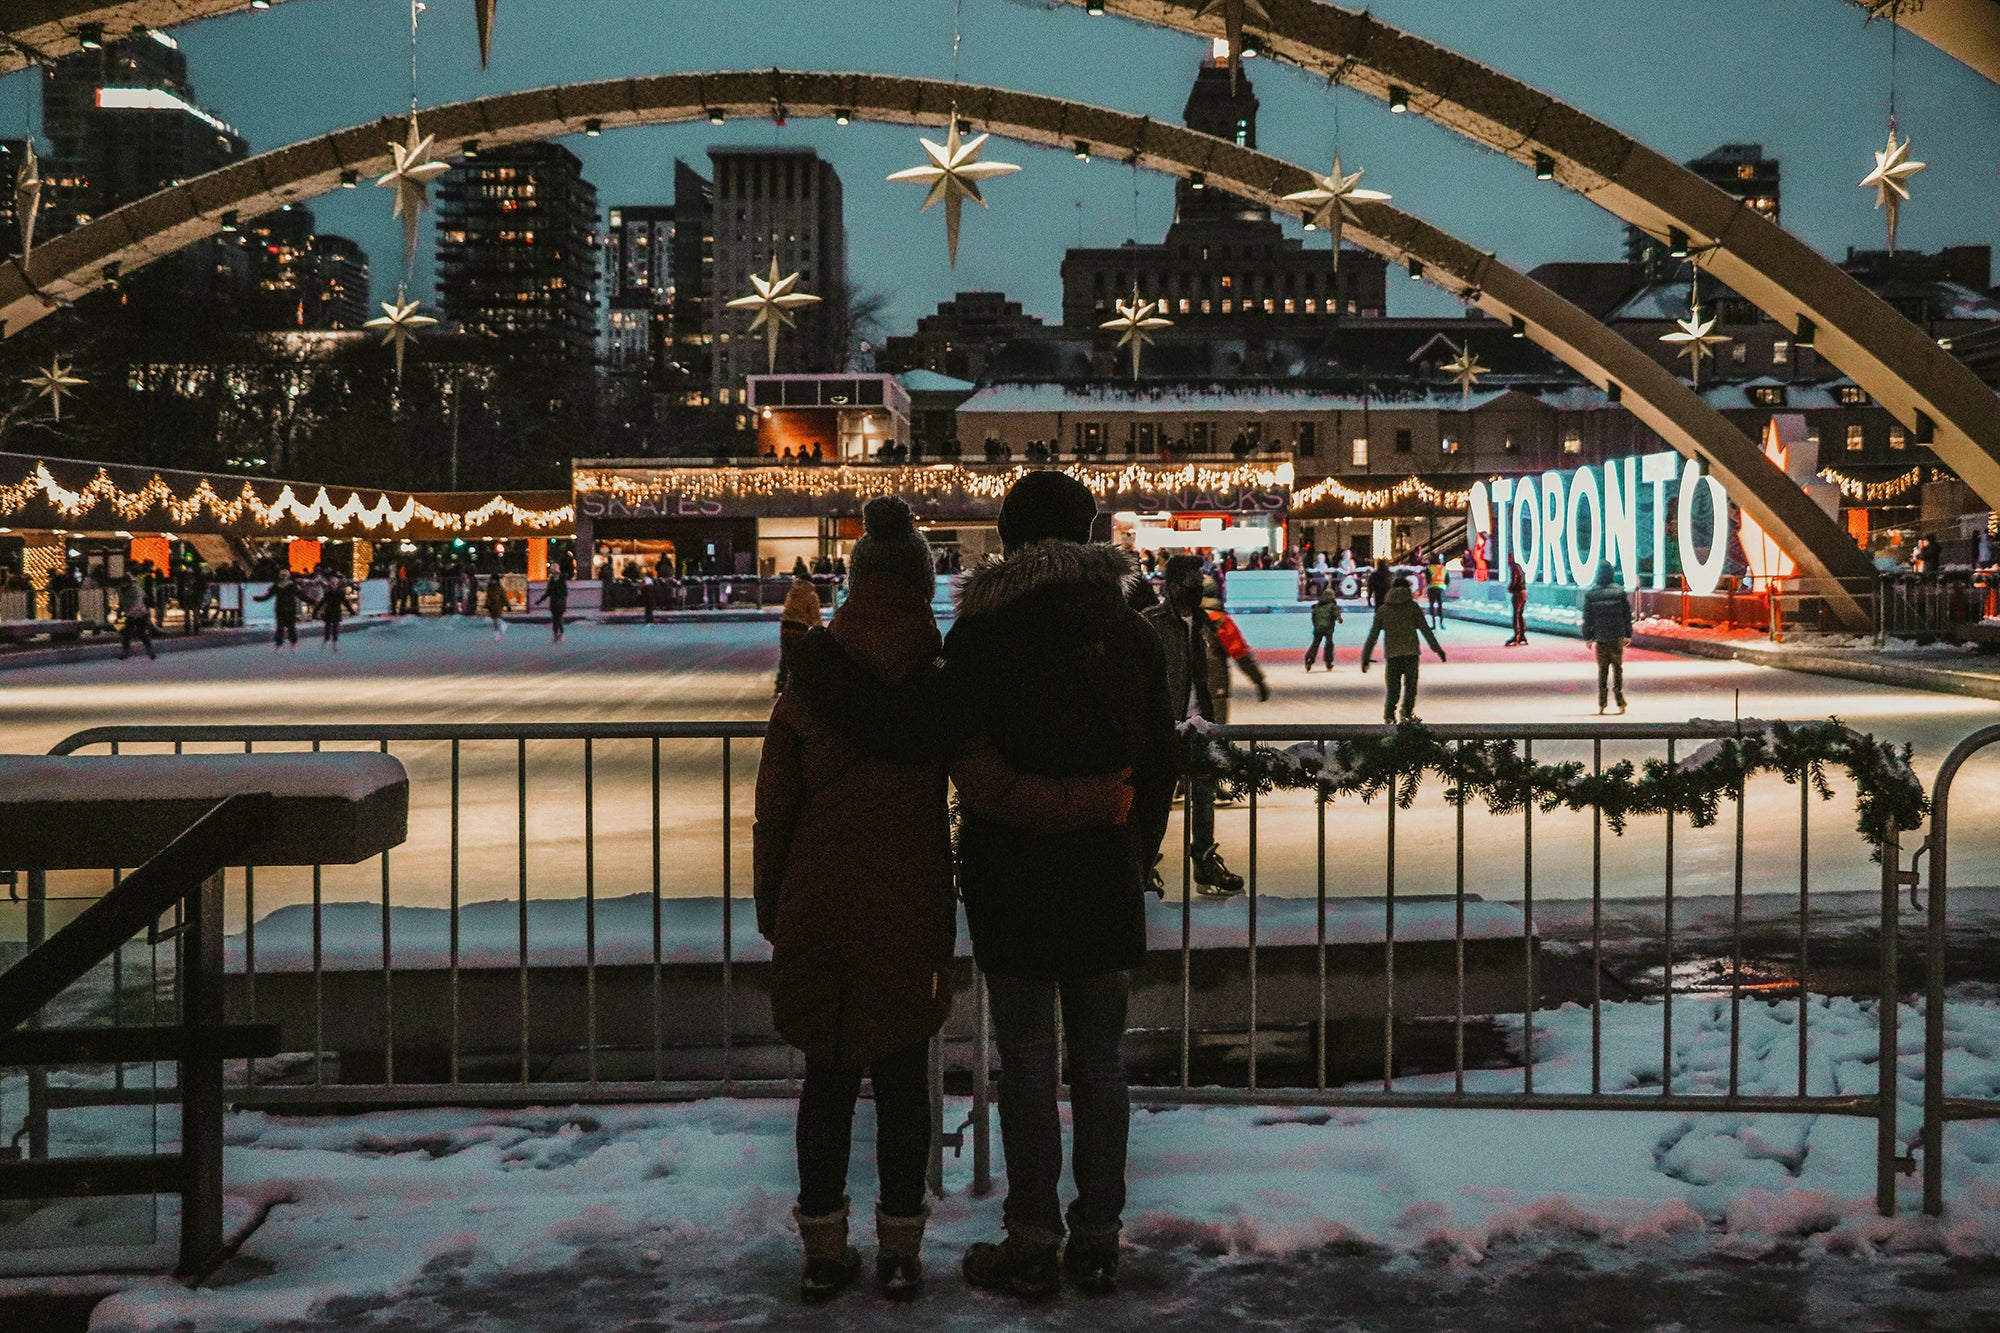 two people hugging each other in front of a lit up ice skating rink